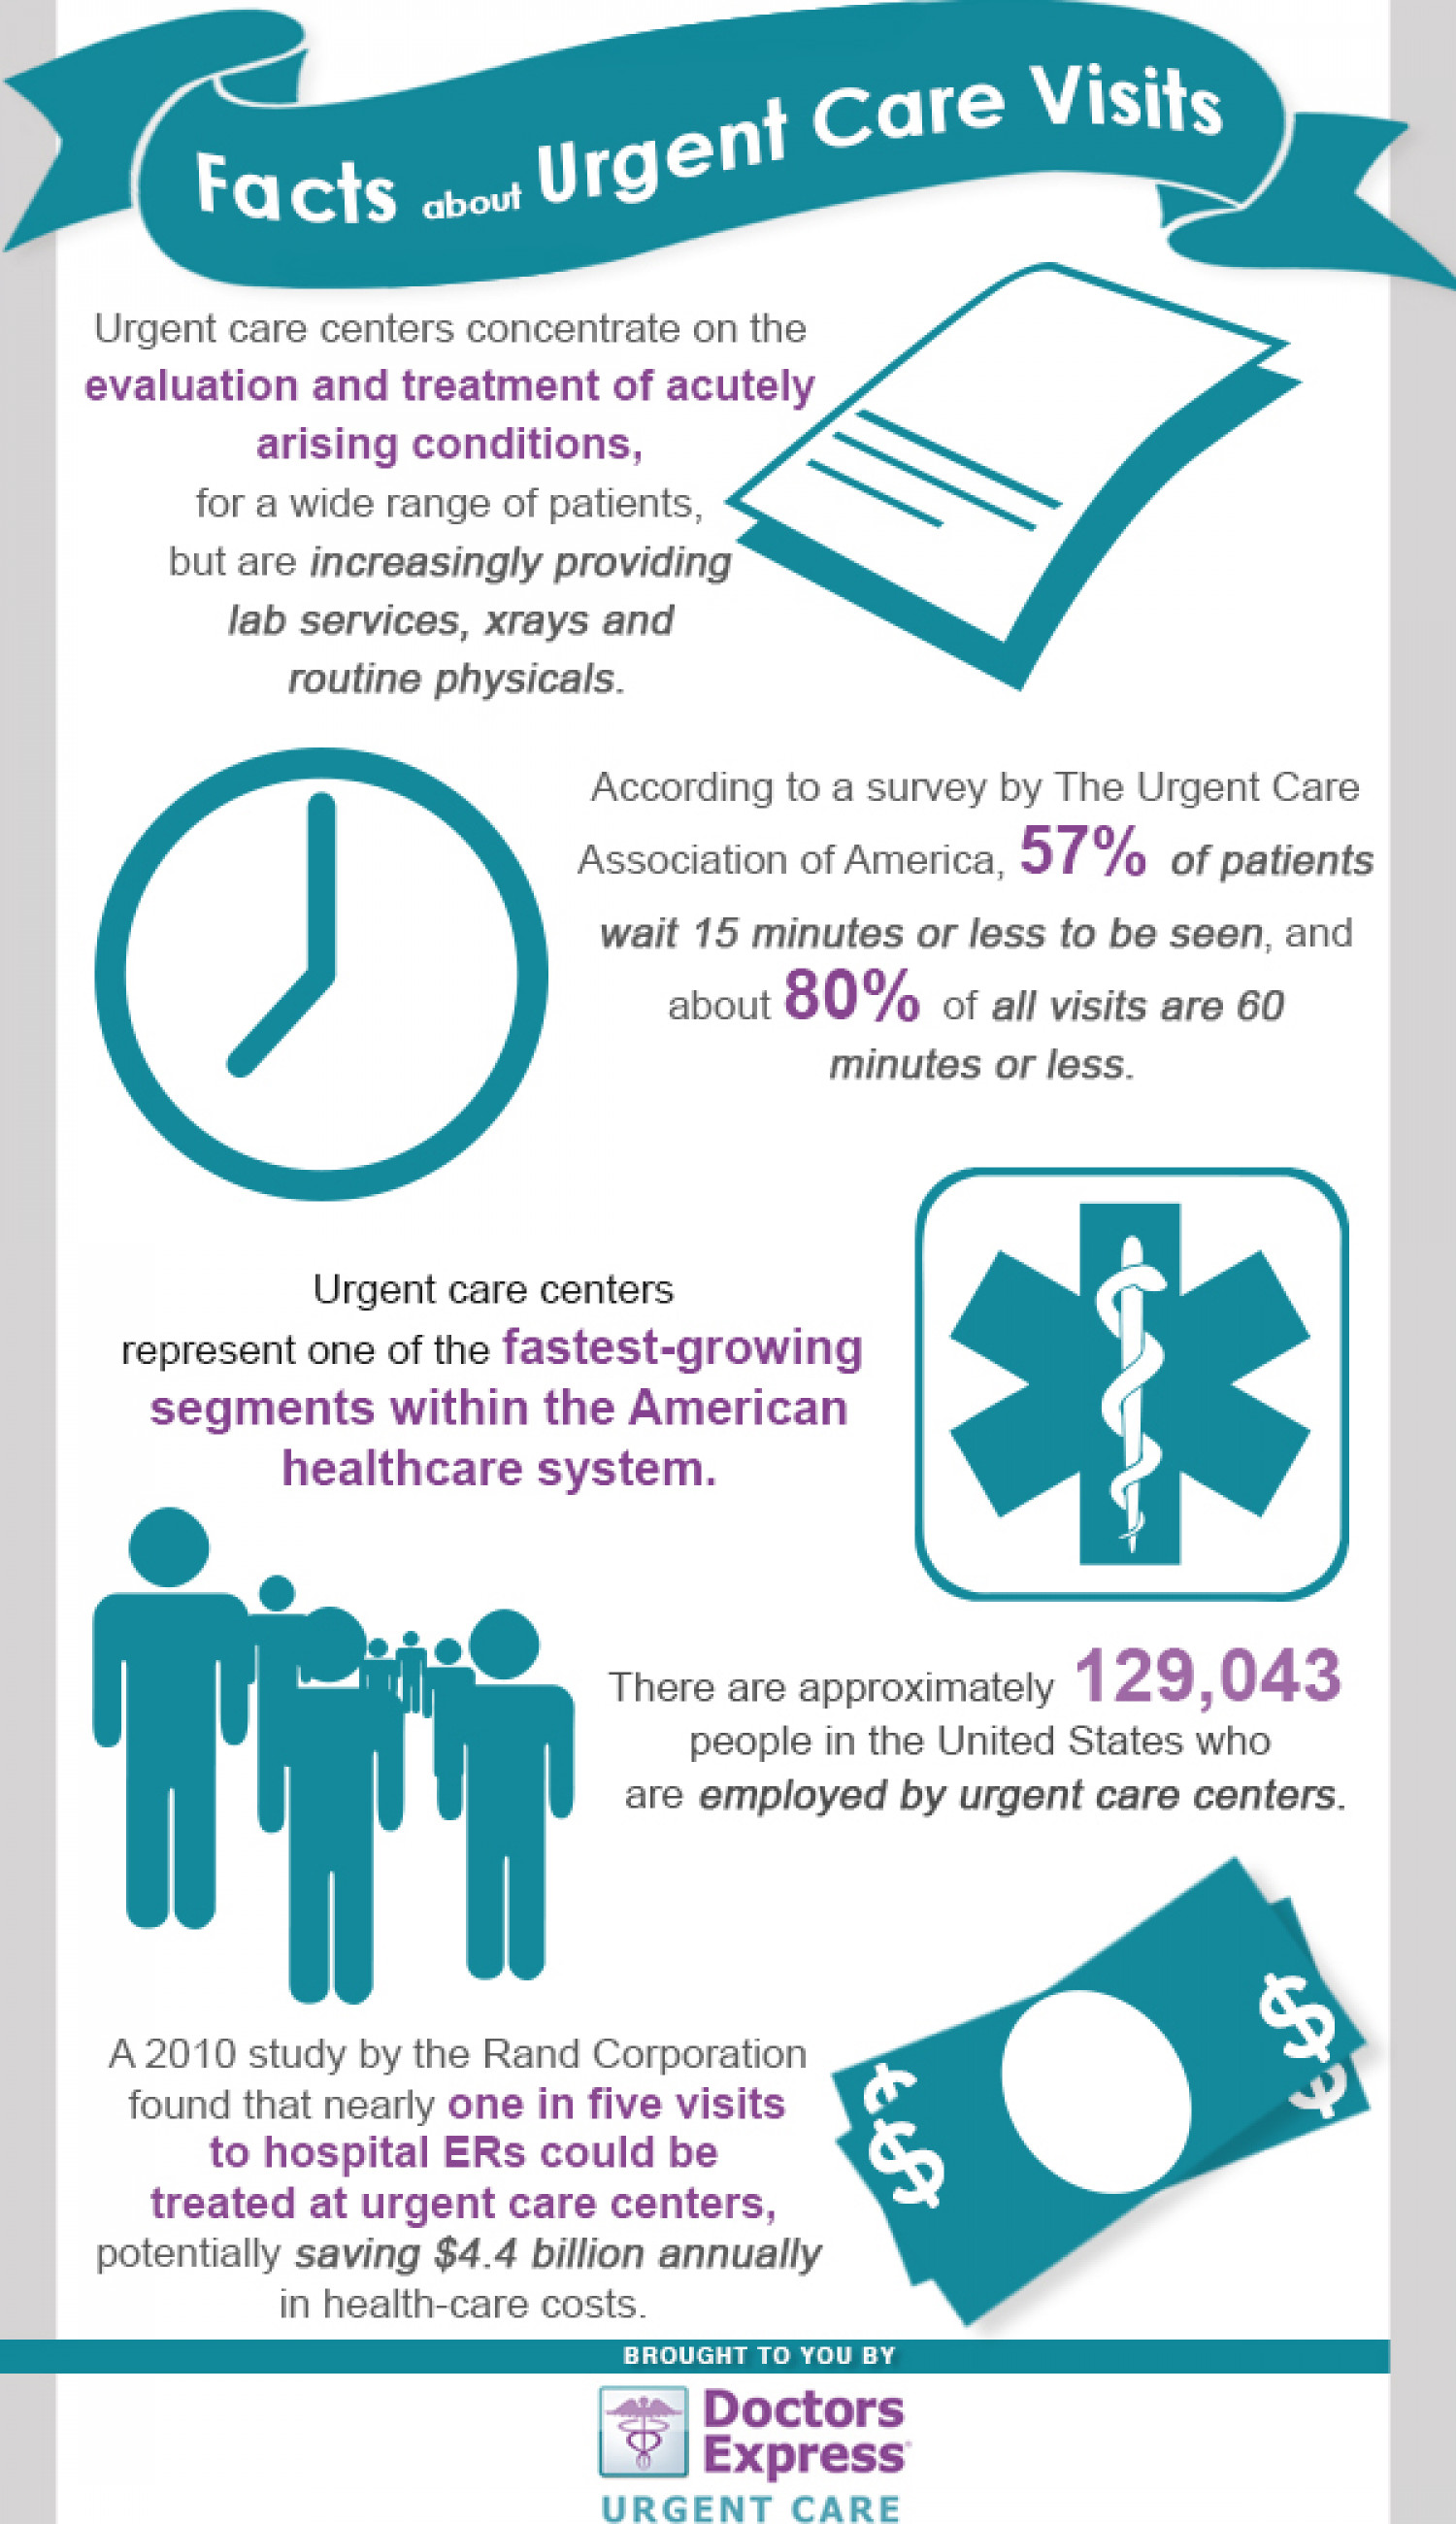 Facts about Urgent Care Visit Infographic